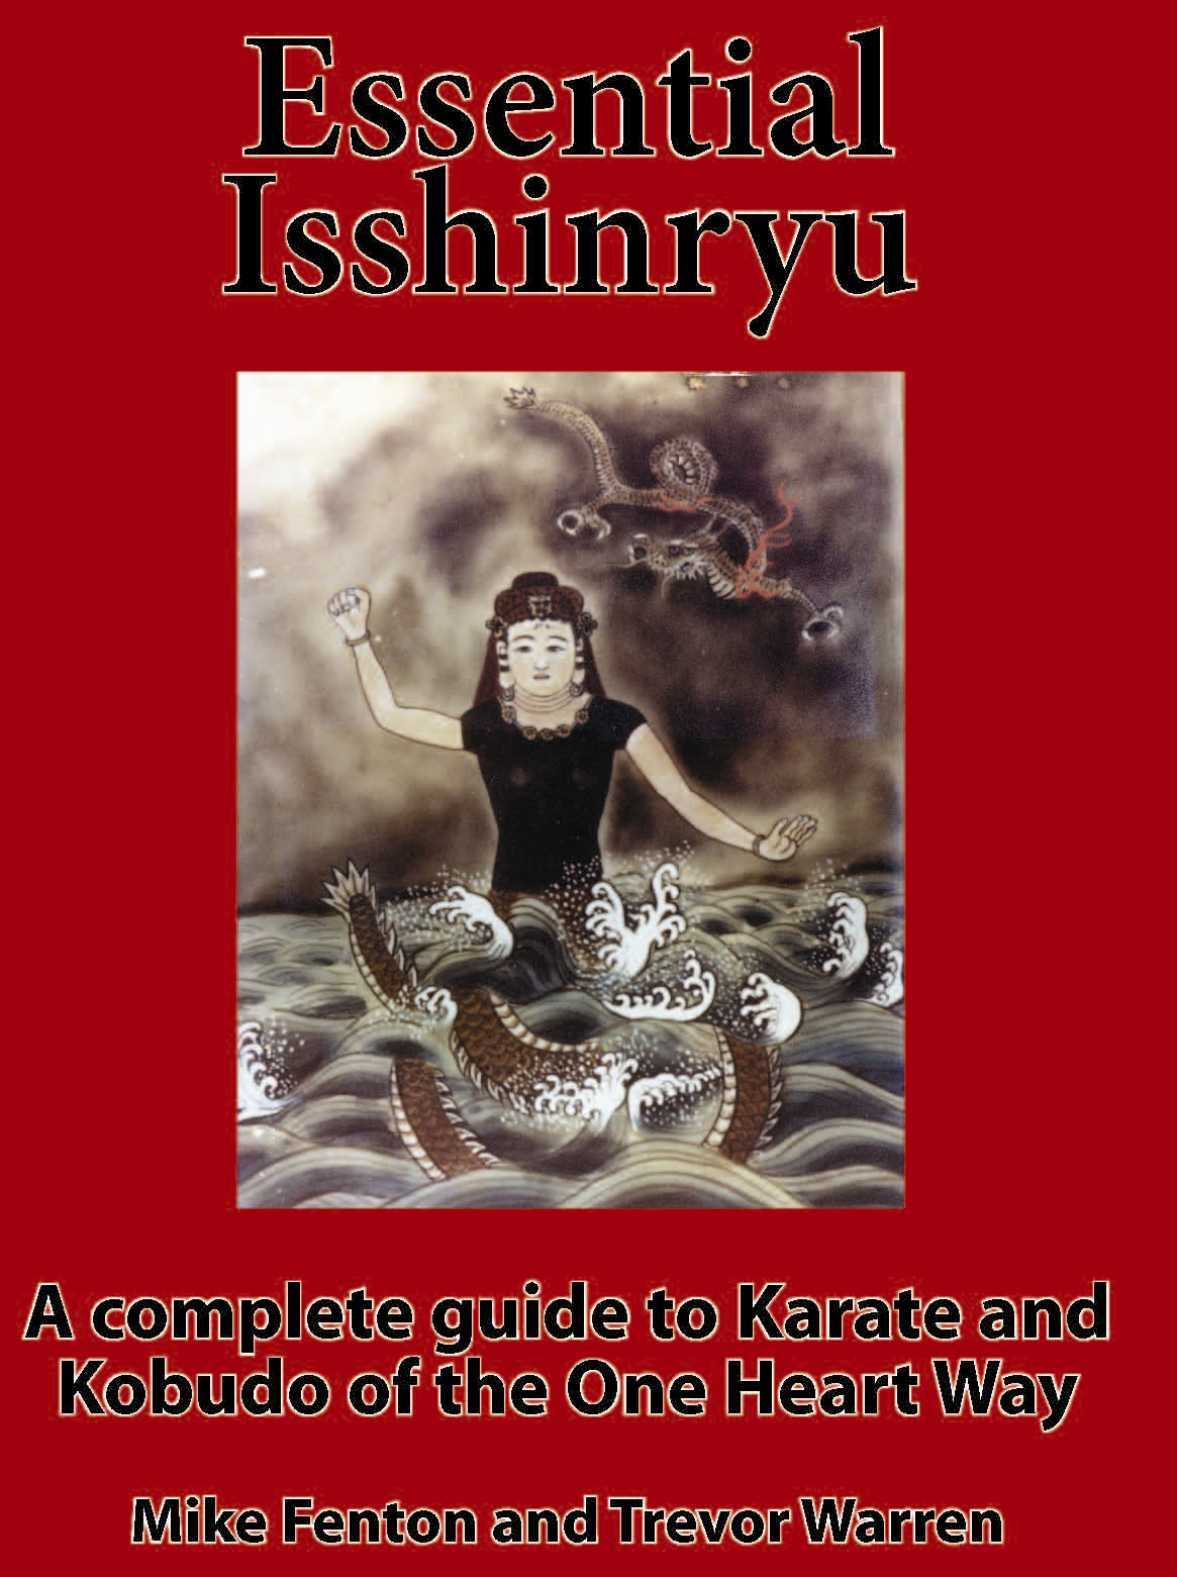 Essential Isshinryu